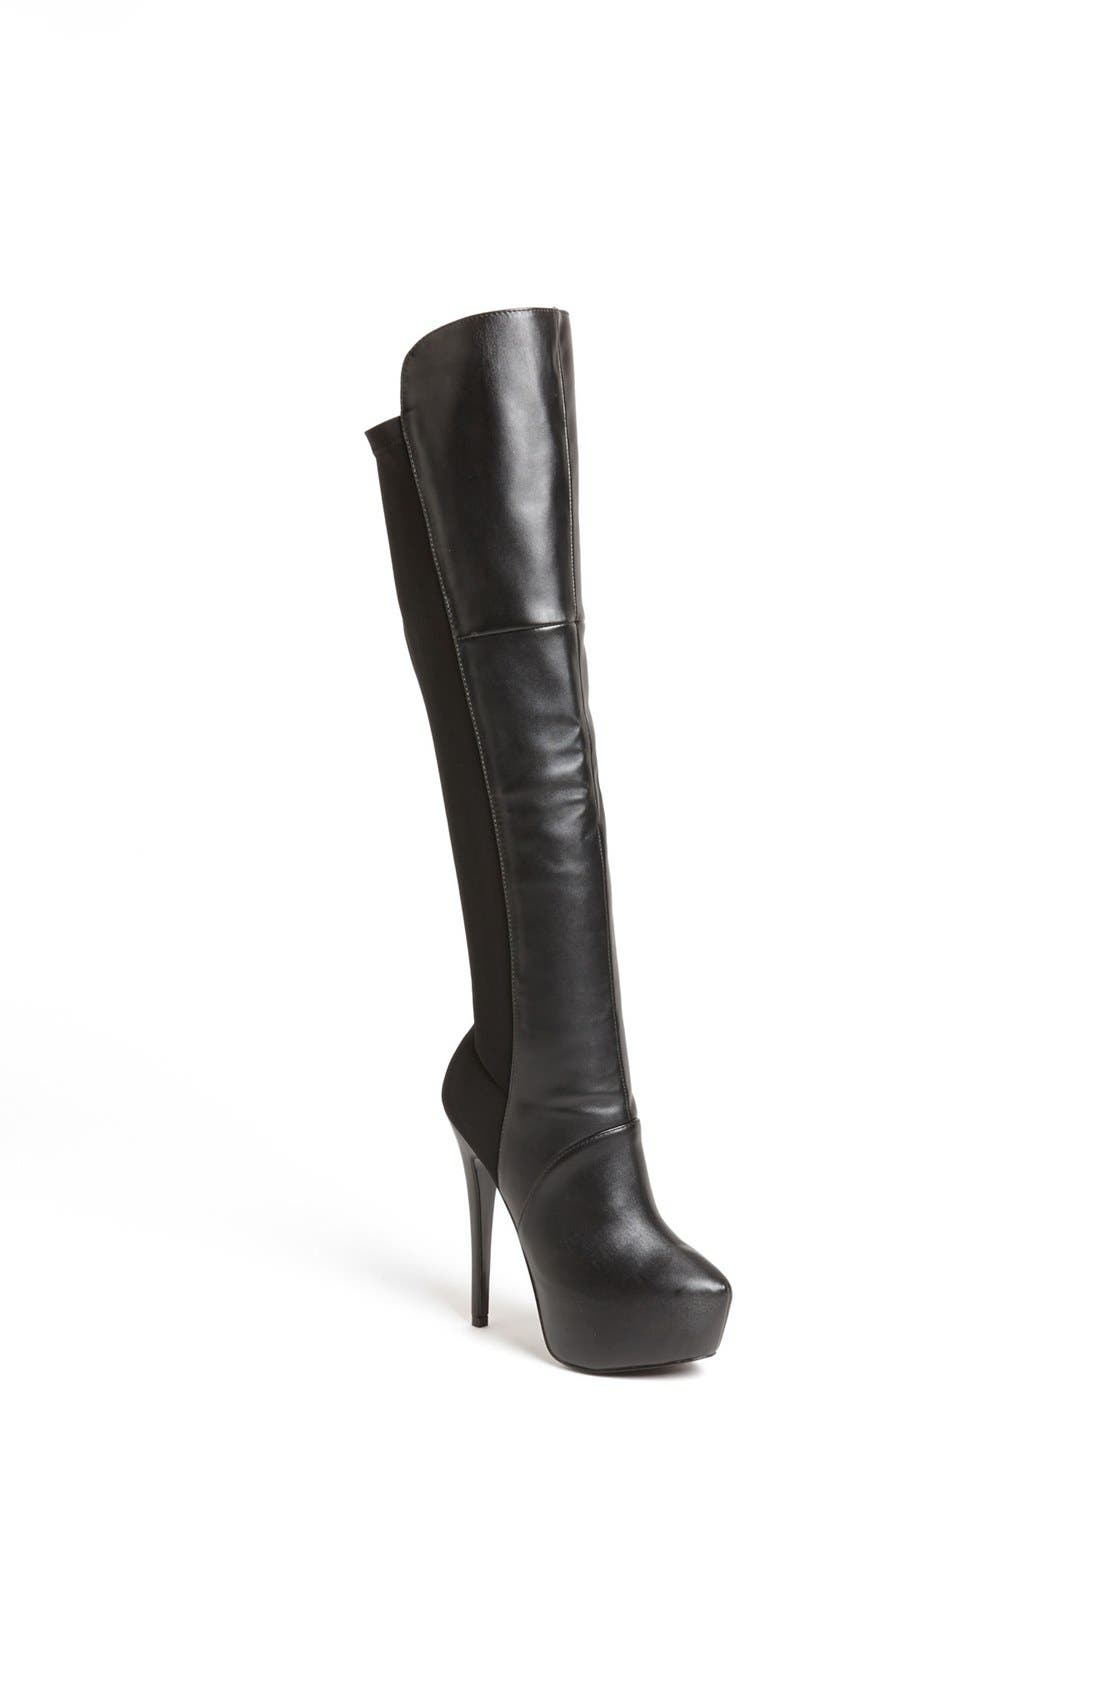 Main Image - Steve Madden 'Highting' Over the Knee Pointy Toe Stretch Boot